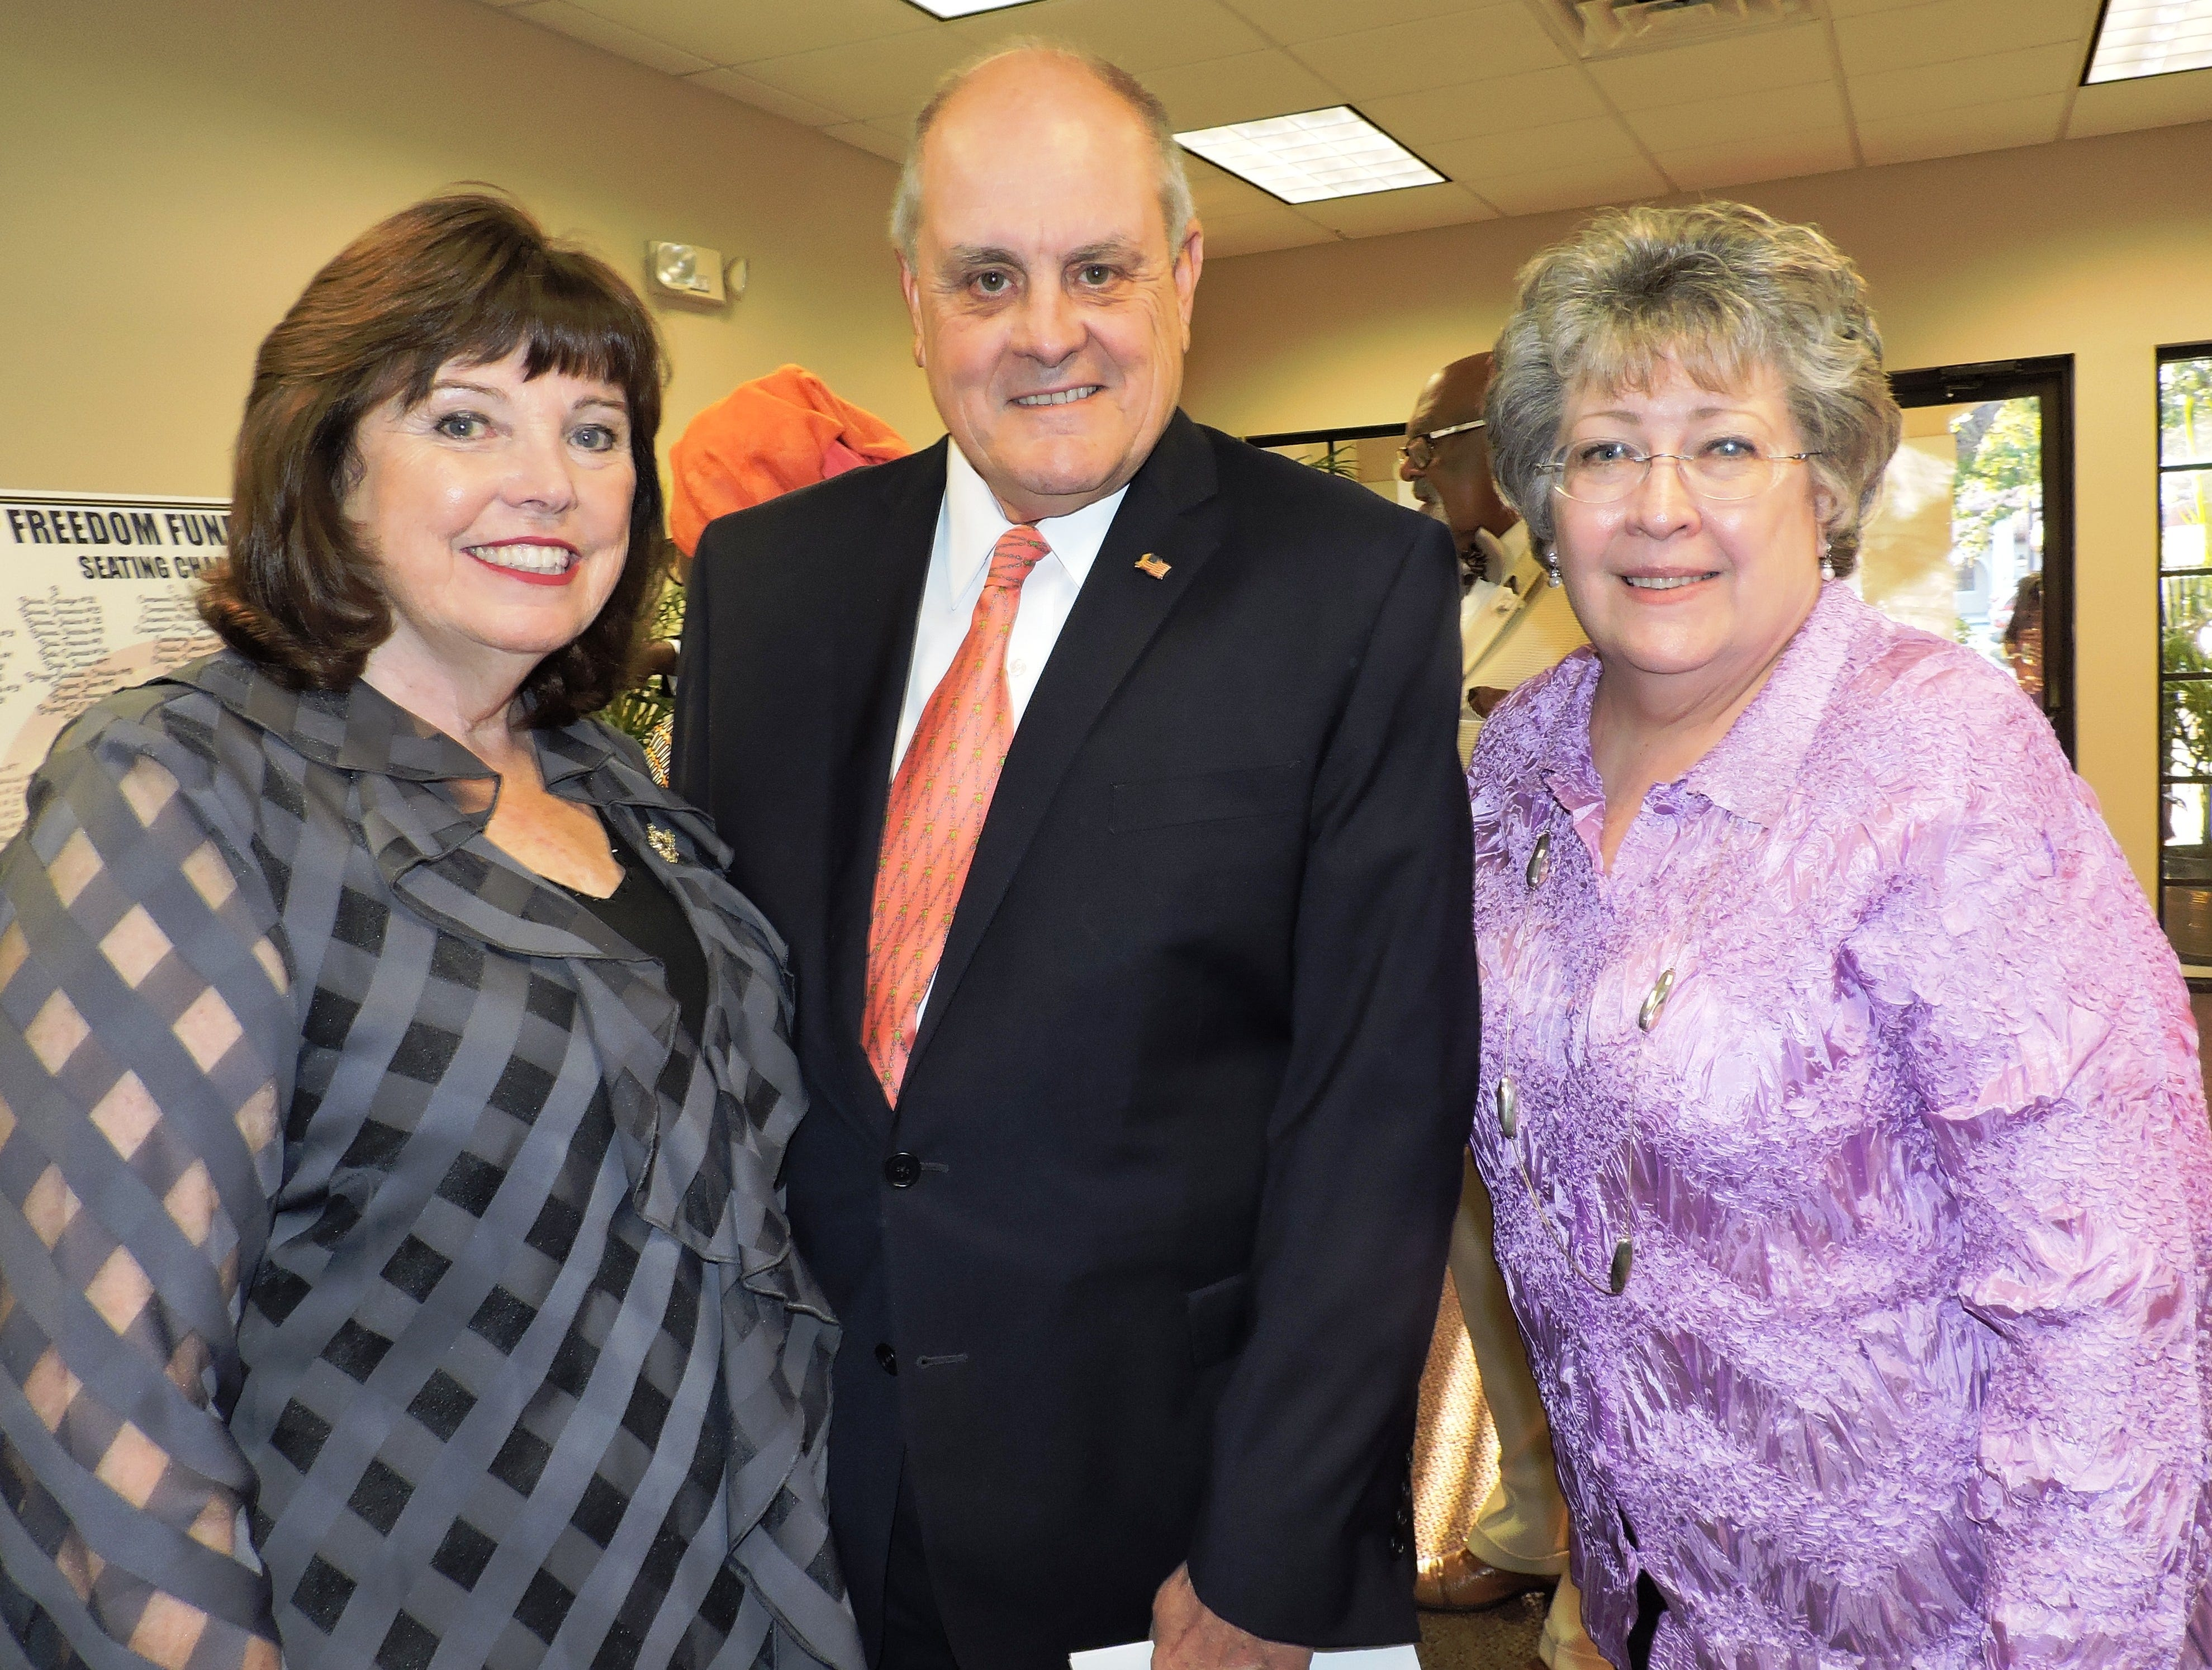 Paula and Paul Nicoletti, left, with Renita Presler at the 2019 Freedom Fund Banquet.